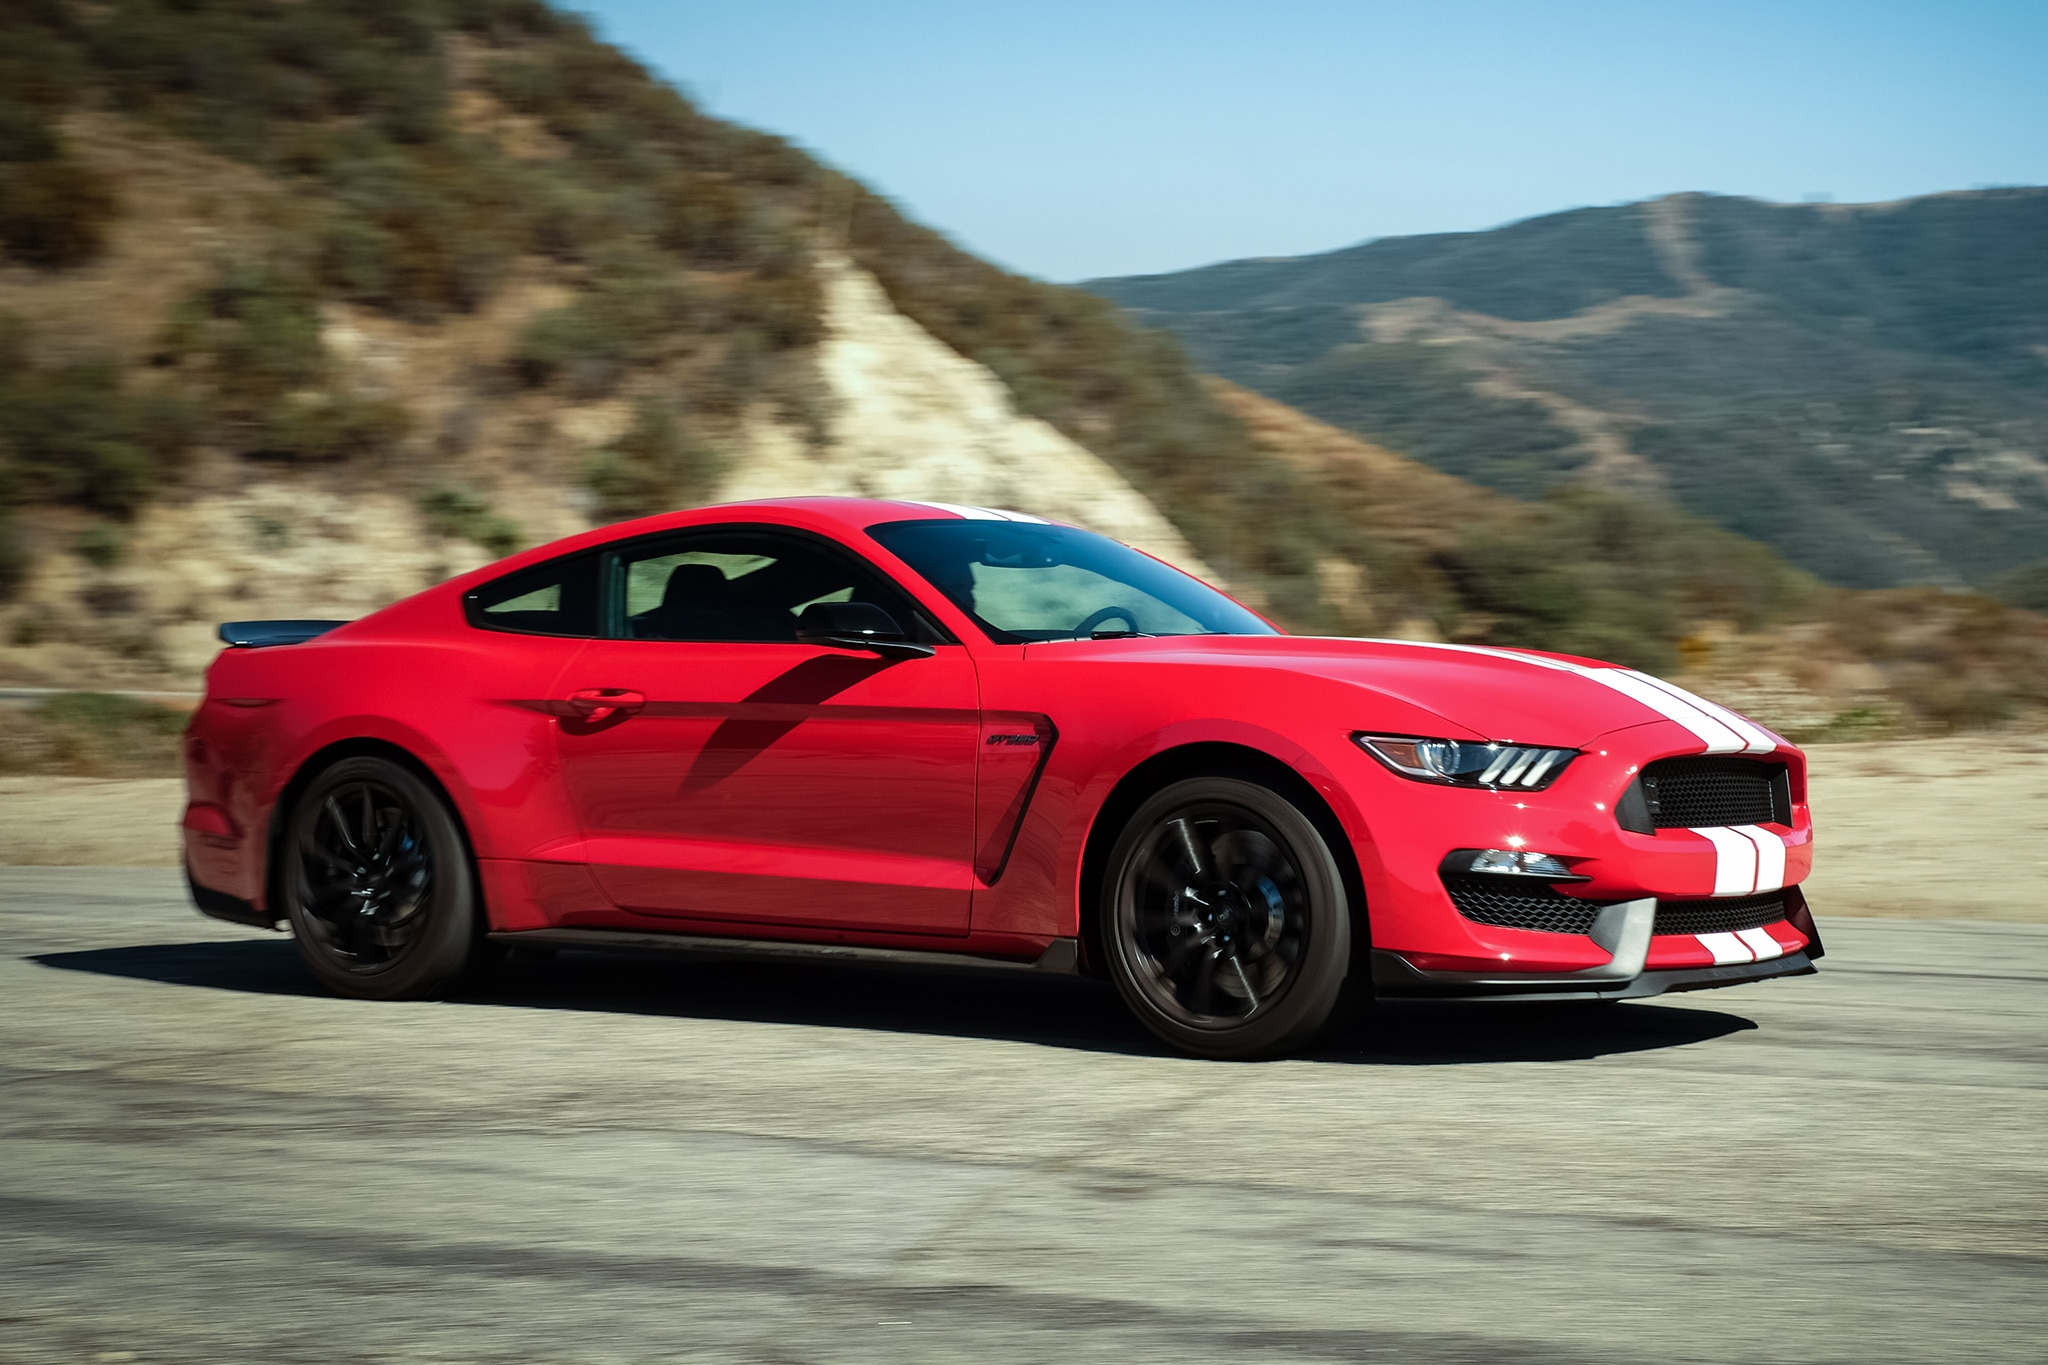 2016 Ford Mustang Shelby GT350 Front Three Quarter In Motion 02